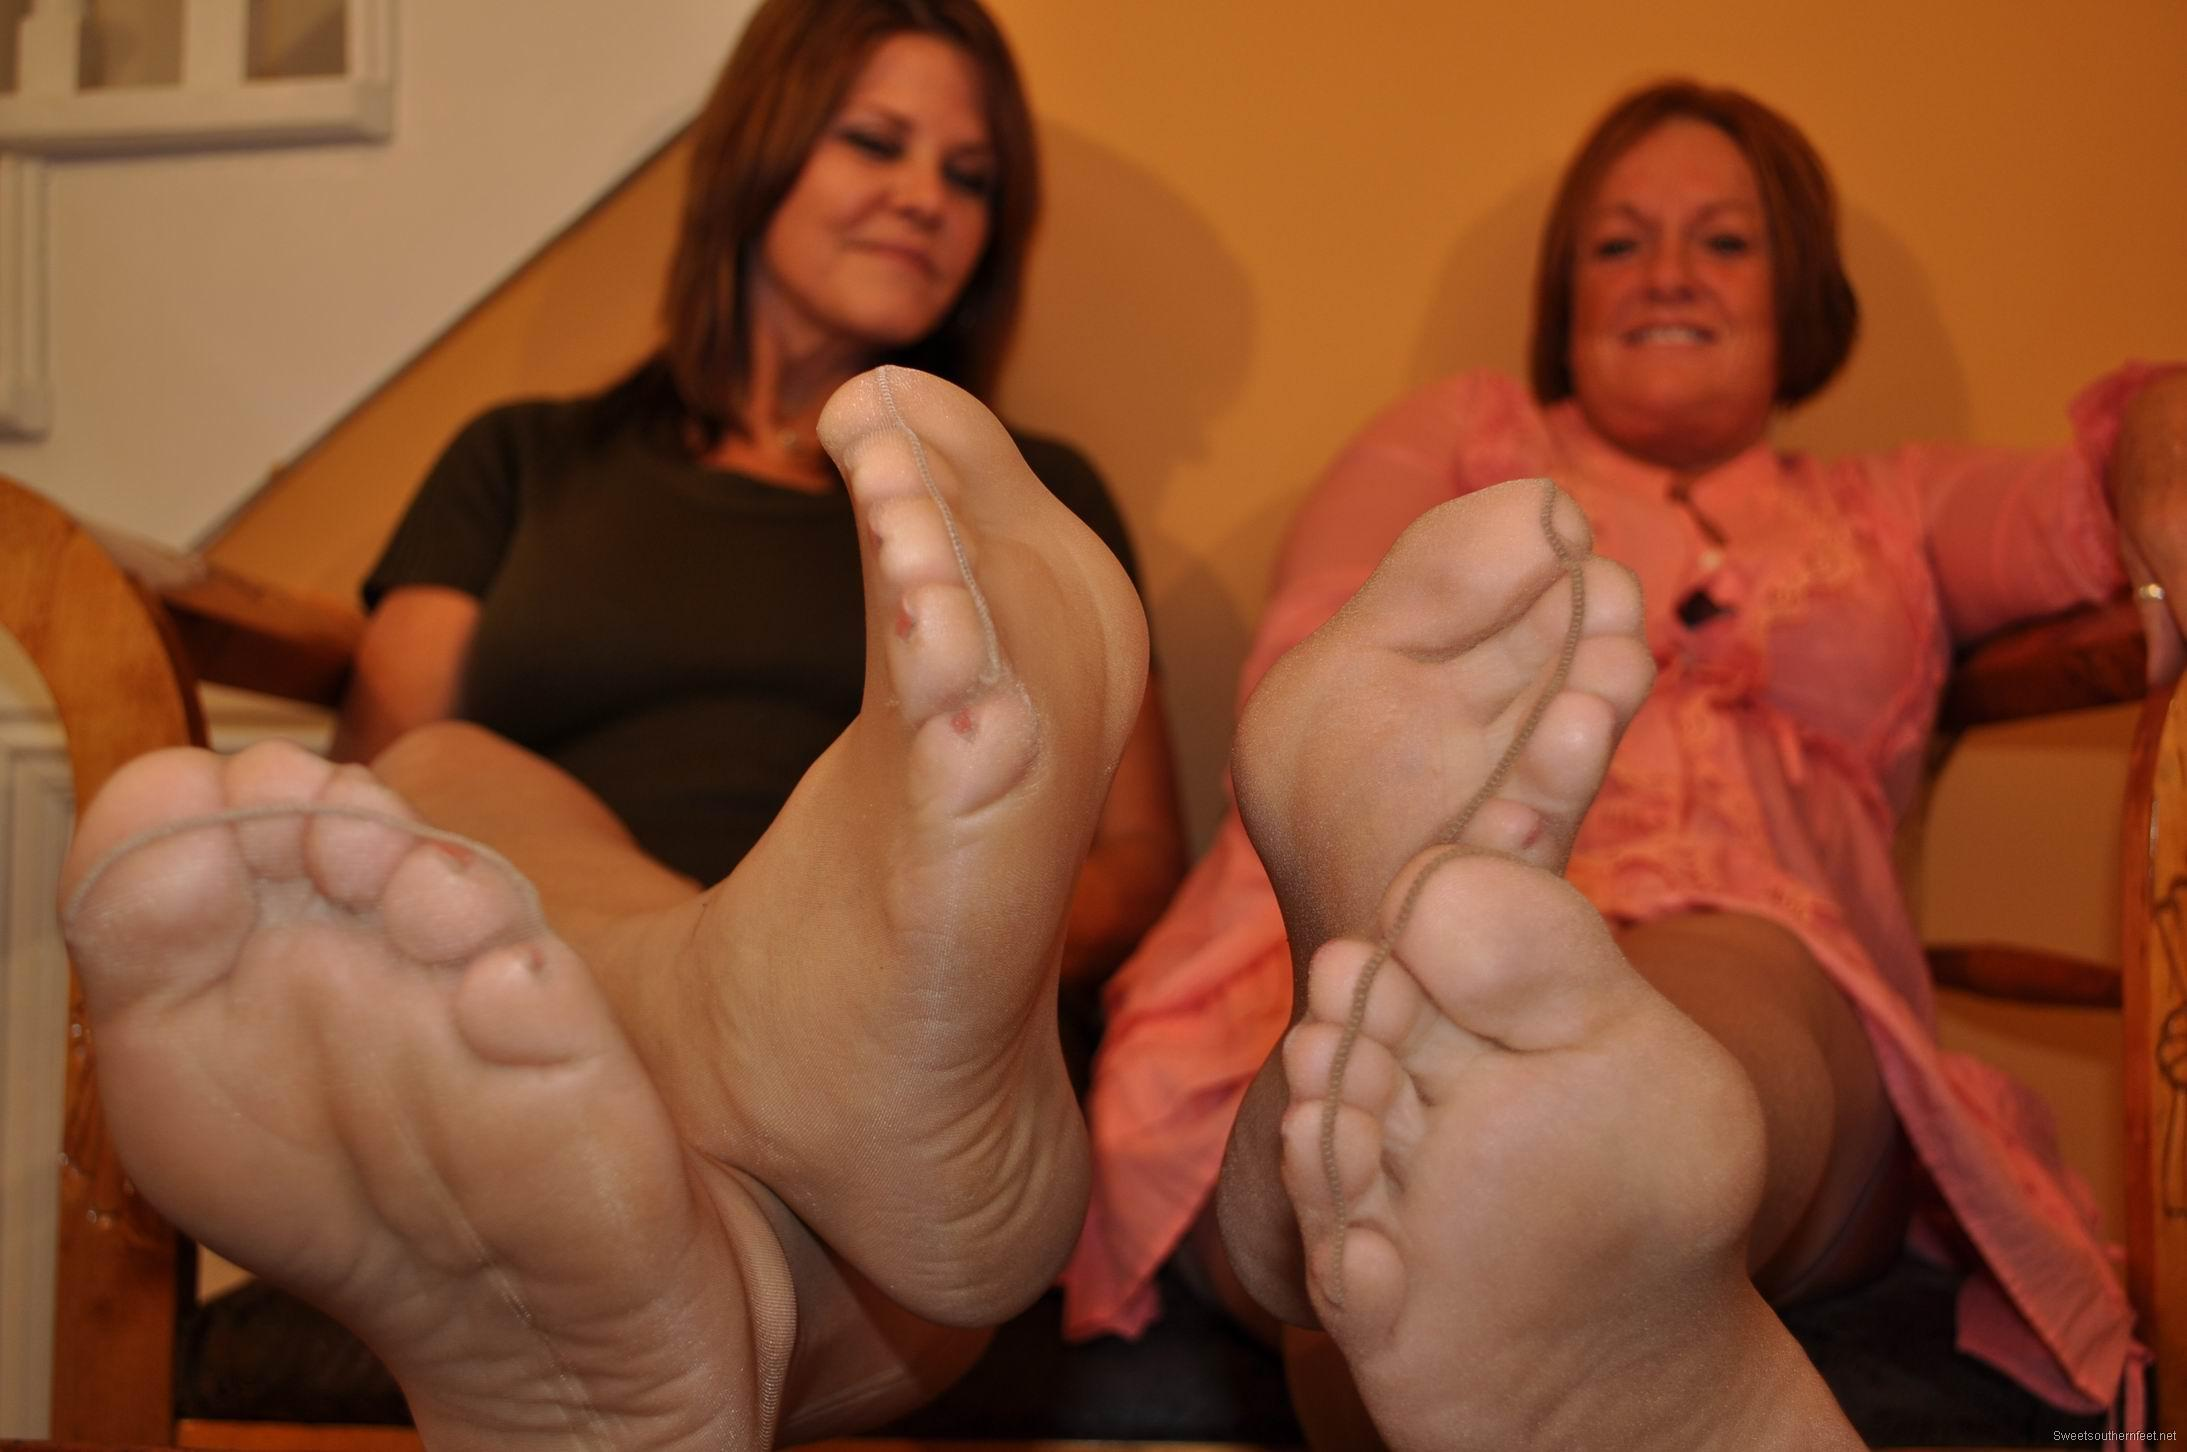 Hide them Footjob with nylon during the